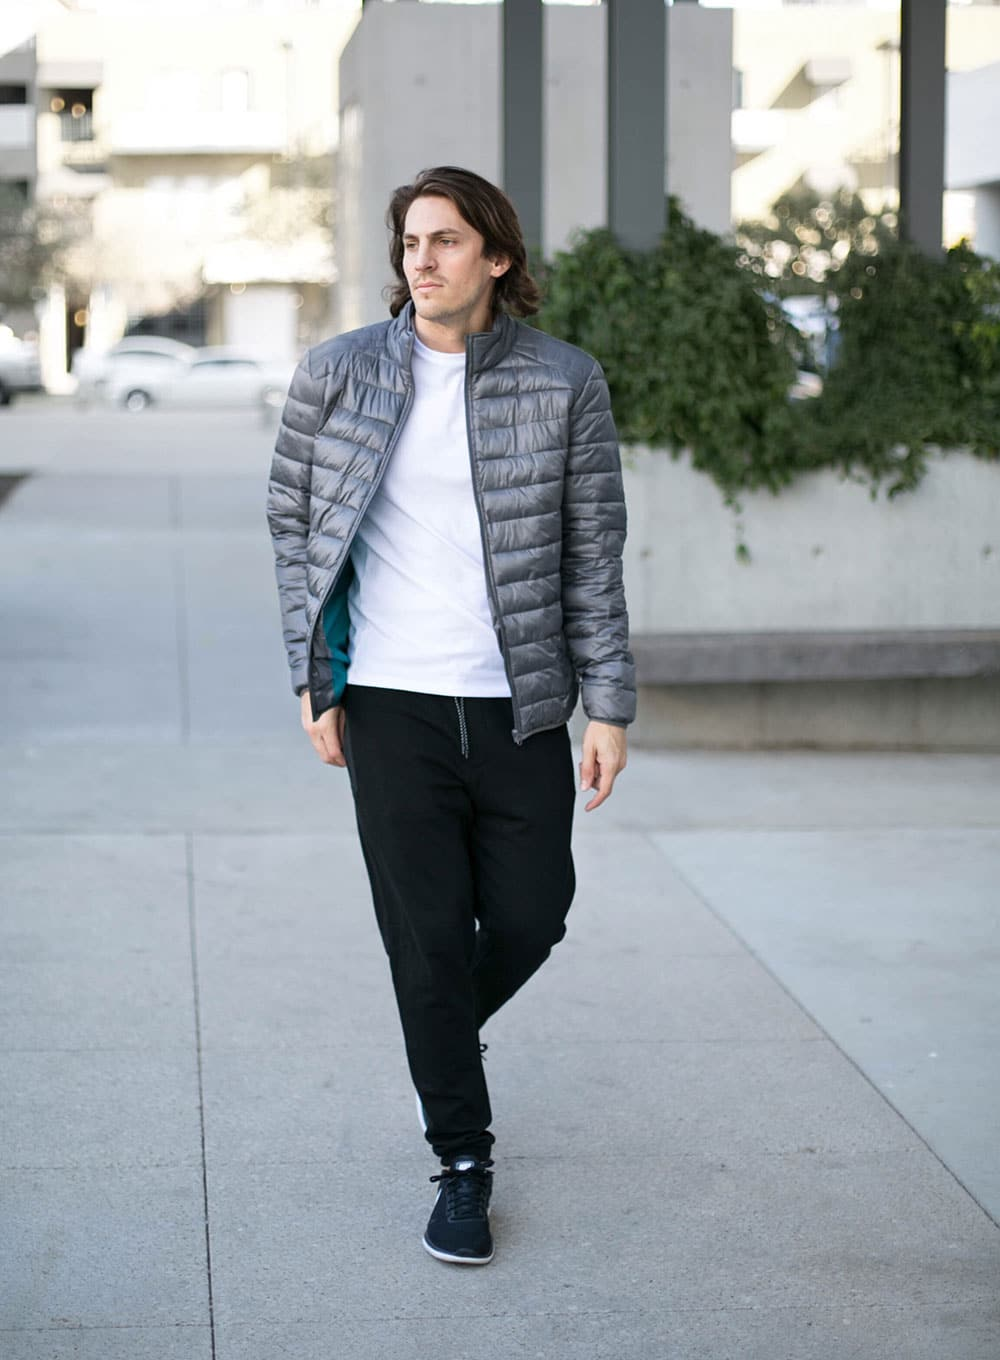 Grey Puffer Jacket - Black Joggers - and Black Sneakers